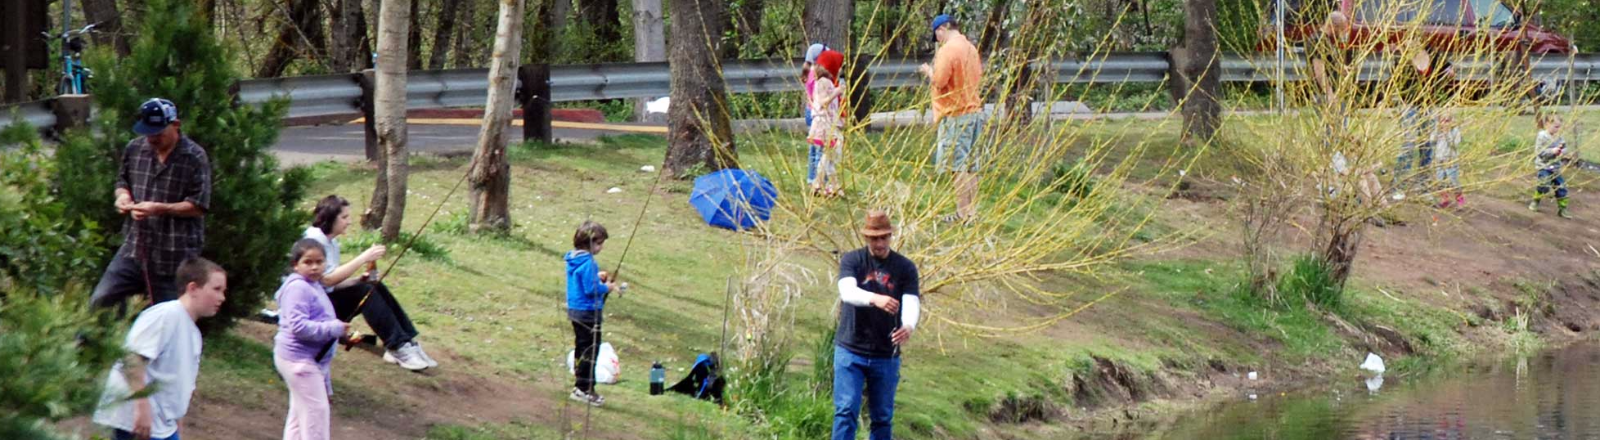 Children and parents with their fishing poles at the Canby Community Park fishing pond in Oregon's Mt. Hood Territory